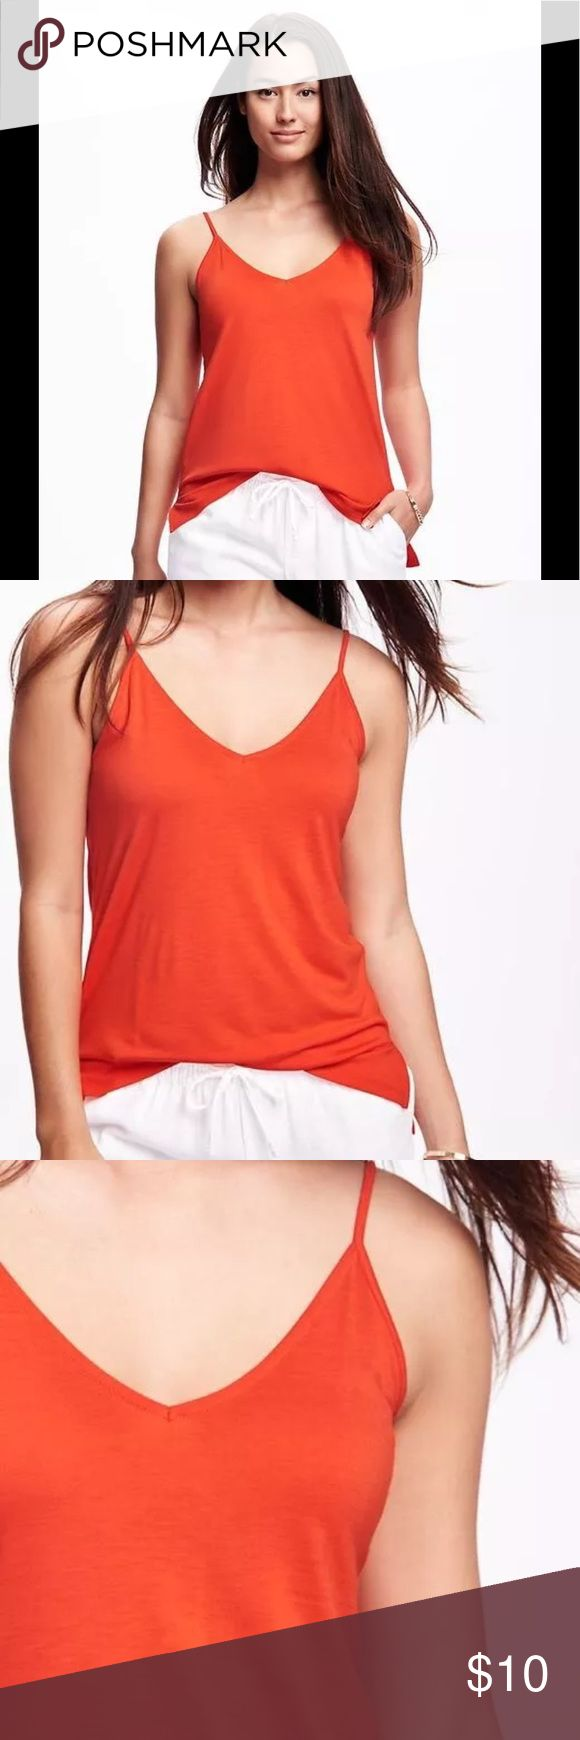 Old Navy Strappy blouse Orange Sz M New Old Navy Strappy blouse Sz M New  Fabric & Care:  100% Rayon. Machine wash cold gentle cycle, wash and dry with like colors. Imported Made in Haiti. Product Details: V-neck; spaghetti straps. Spaghetti straps. Smooth, medium-weight & side slits.  Simple and casual, wear by itself or with a pullover. Old Navy Tops Tank Tops